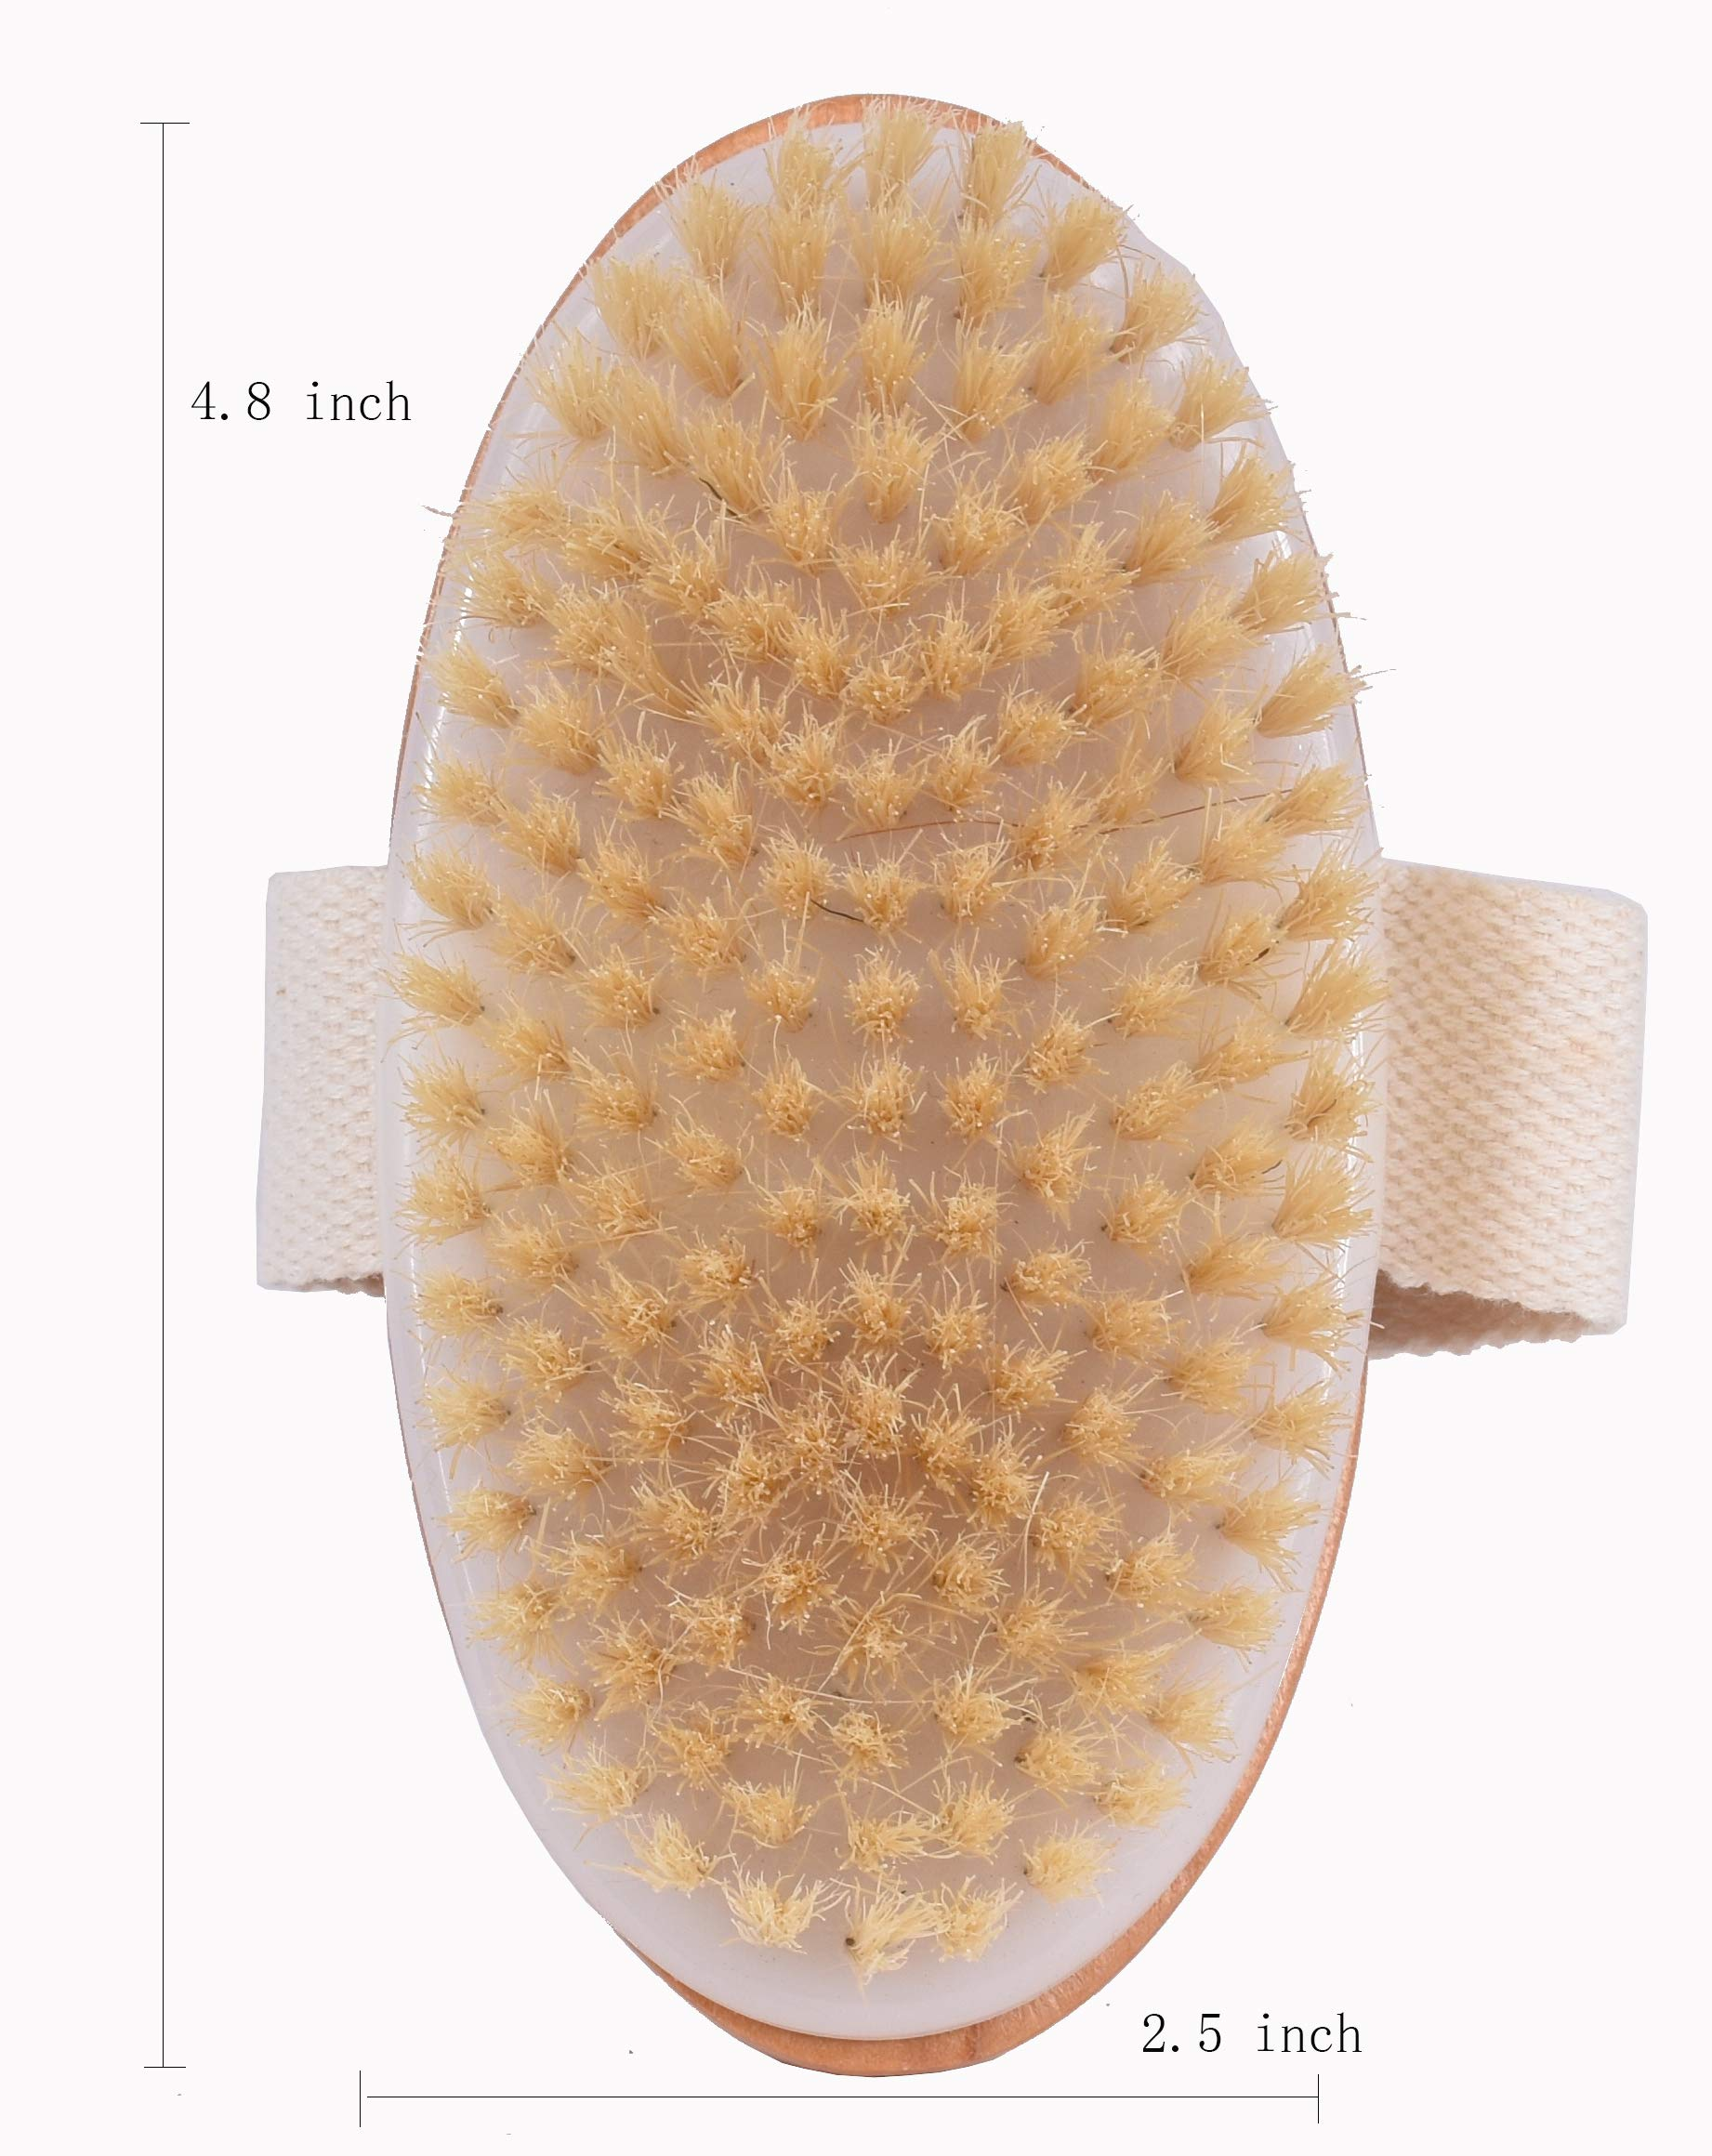 Dry Bath Body Brush Back Scrubber, Improves Skin\'s Health, 100% Natural Bristles Body Massager, Perfect for Exfoliating, Detox and Cellulite, Blood Circulation, Good for Health and Beauty